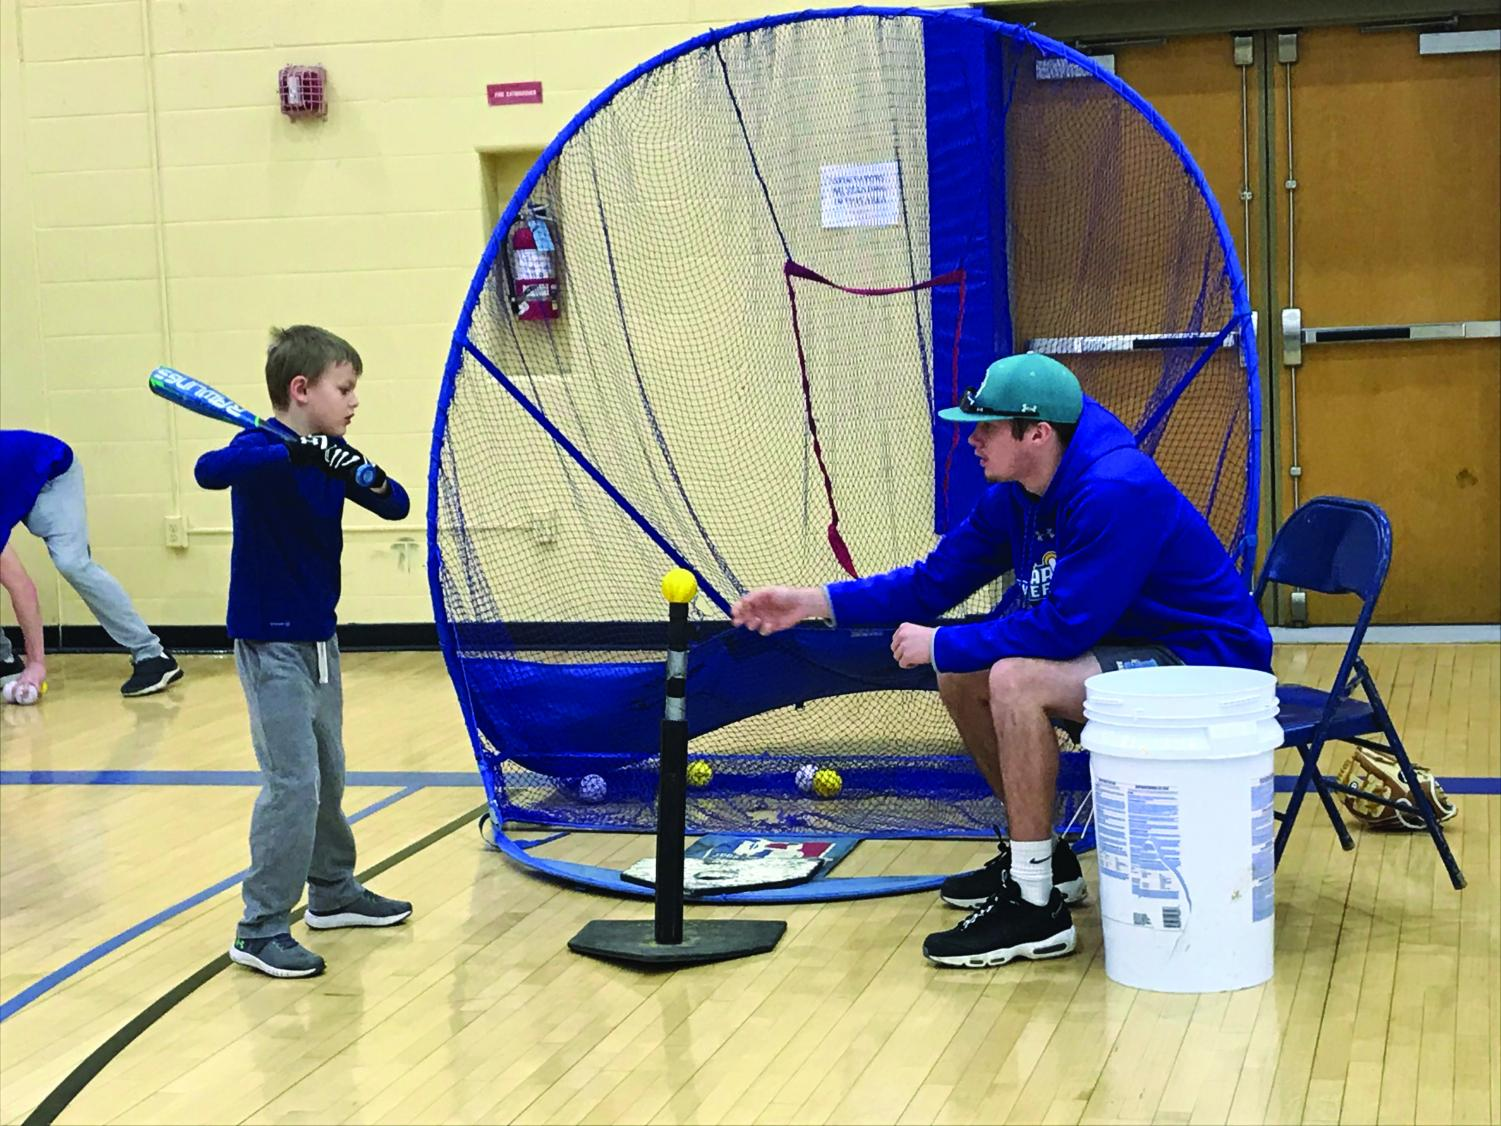 AACC Baseball player John Shupe teaches a youth player how to hit off of a tee.